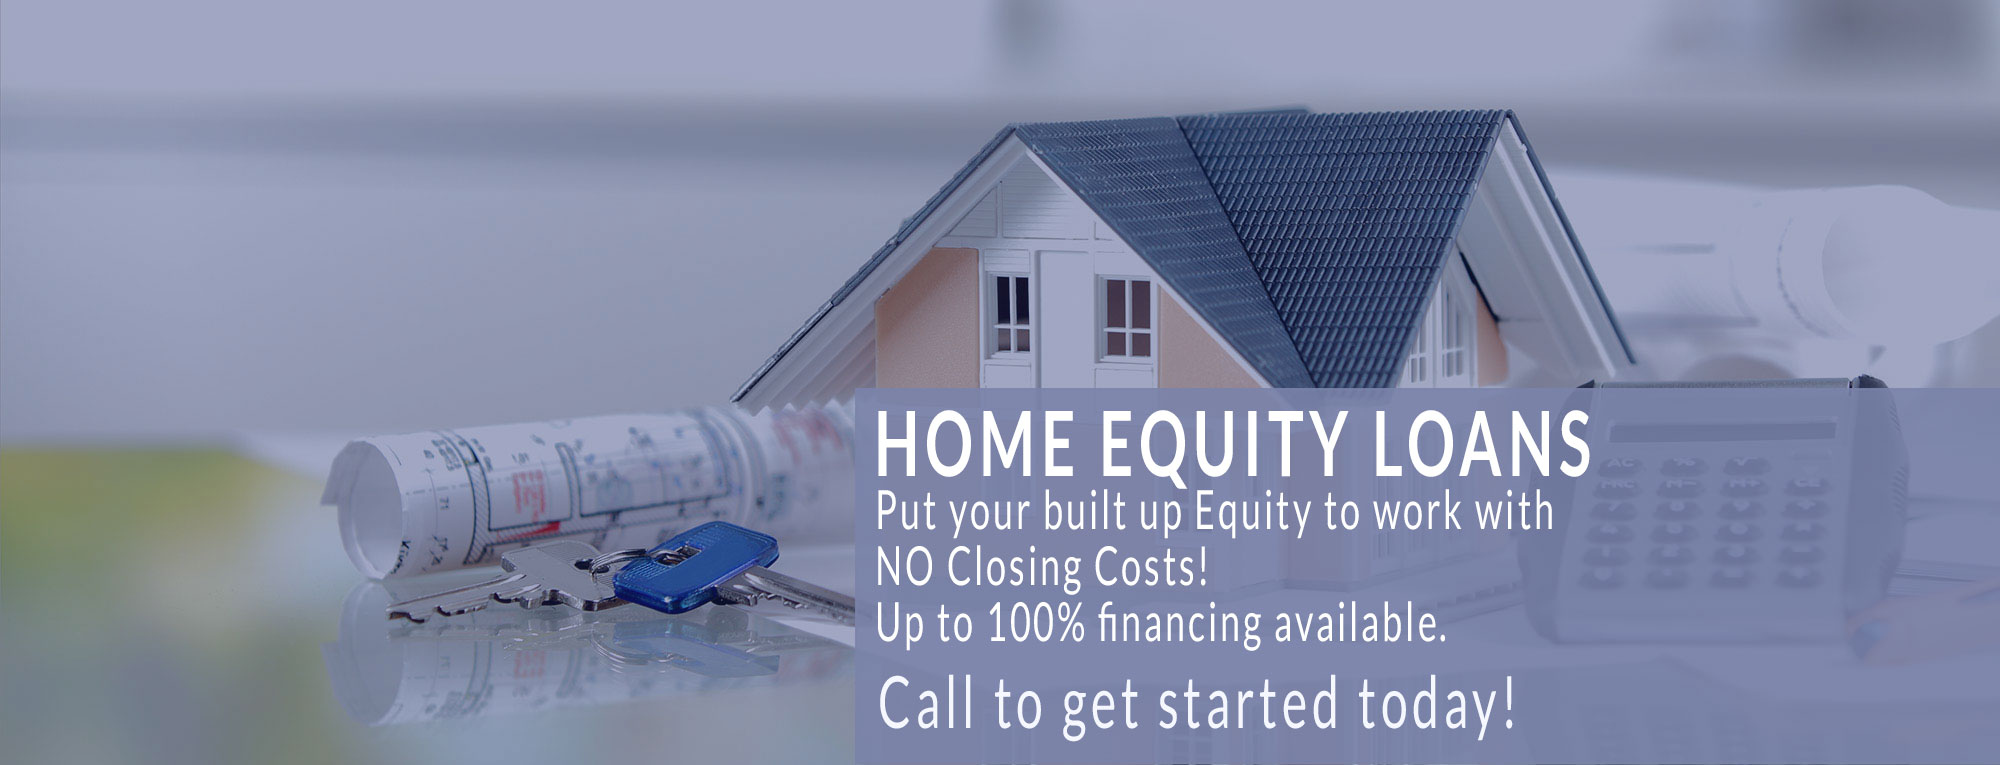 Home Equity Loans - Put your built up Equity to work with NO Closing Costs! Up to 100% financing available. Call to get started today!